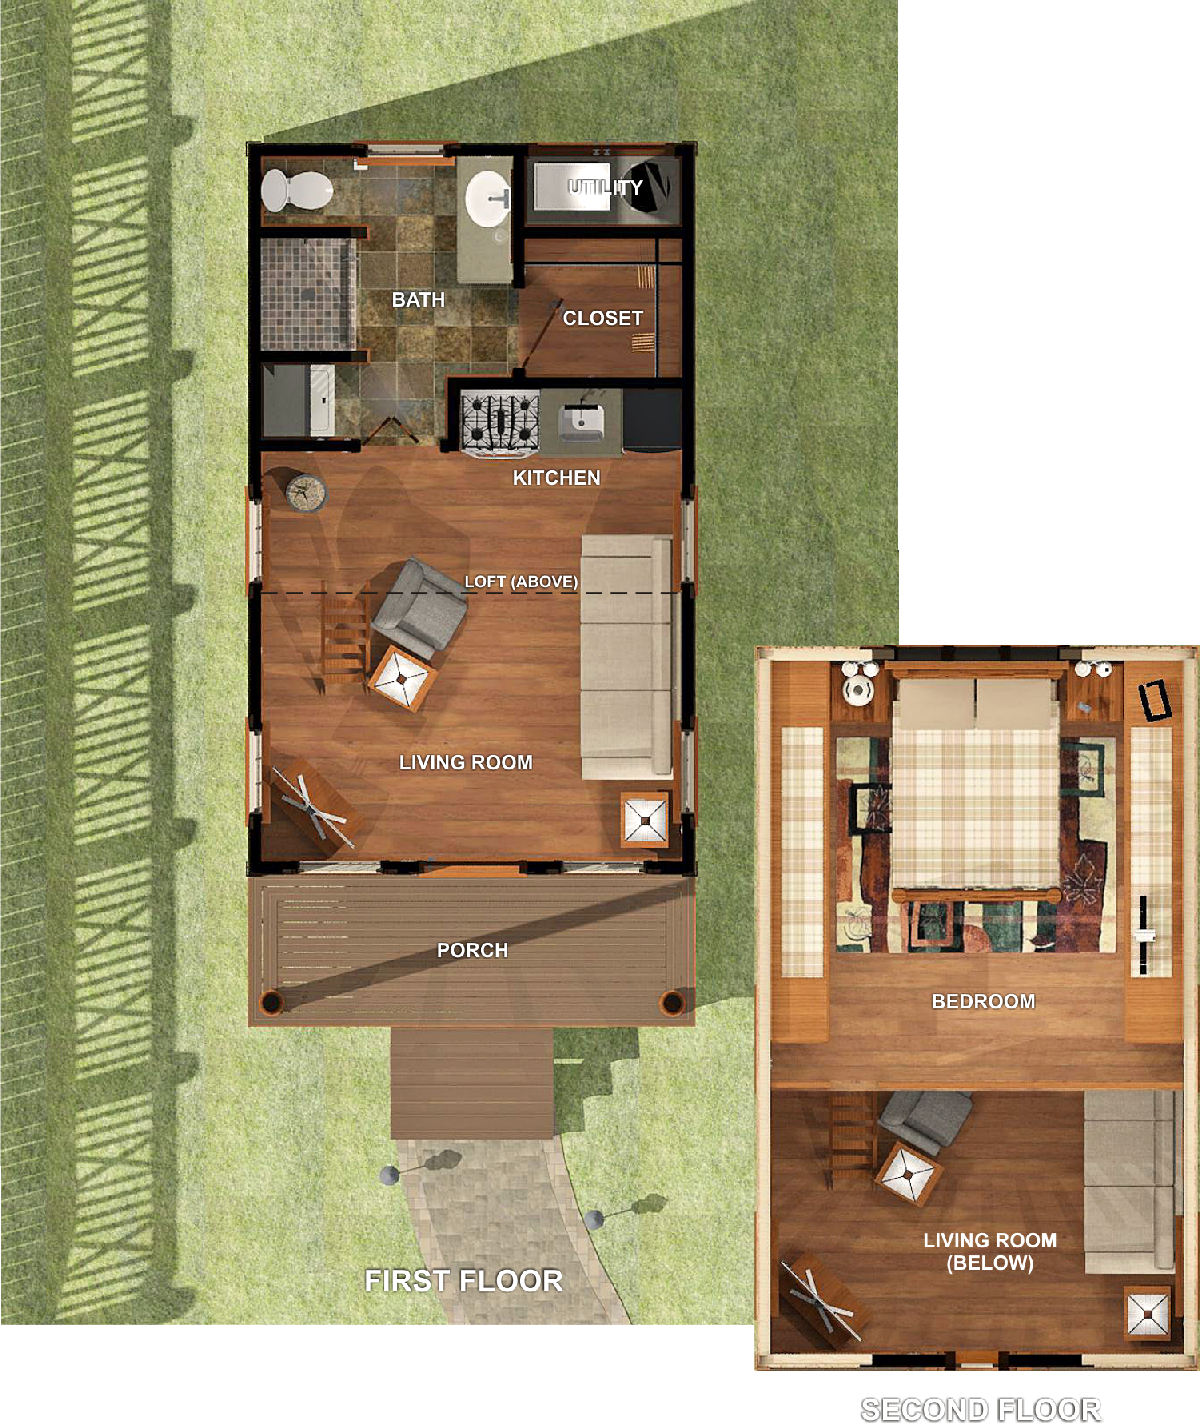 Texas tiny homes plan 448 Small house pictures and plans